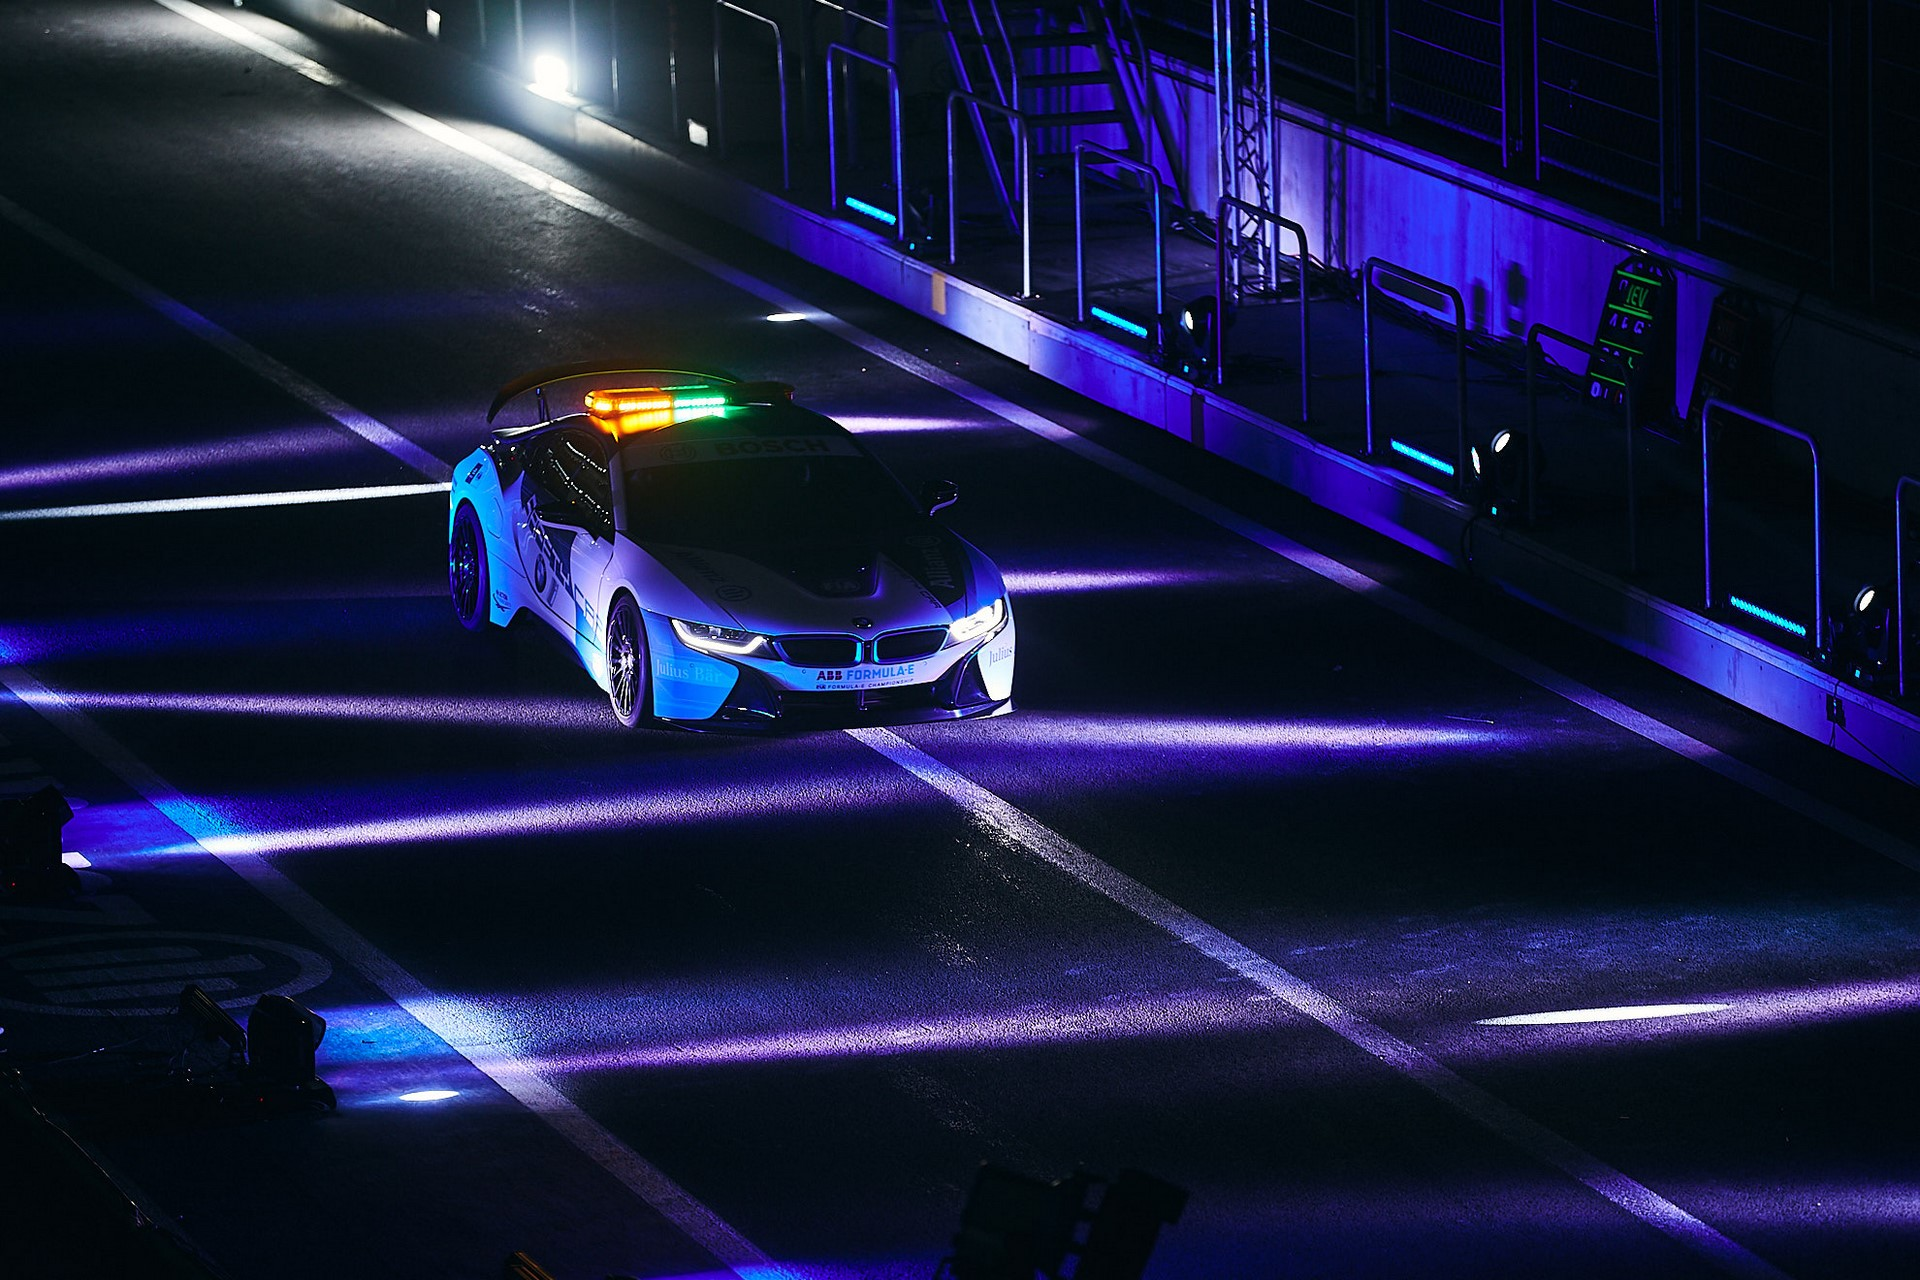 BMW i8 Formula E safety car 2019 (14)